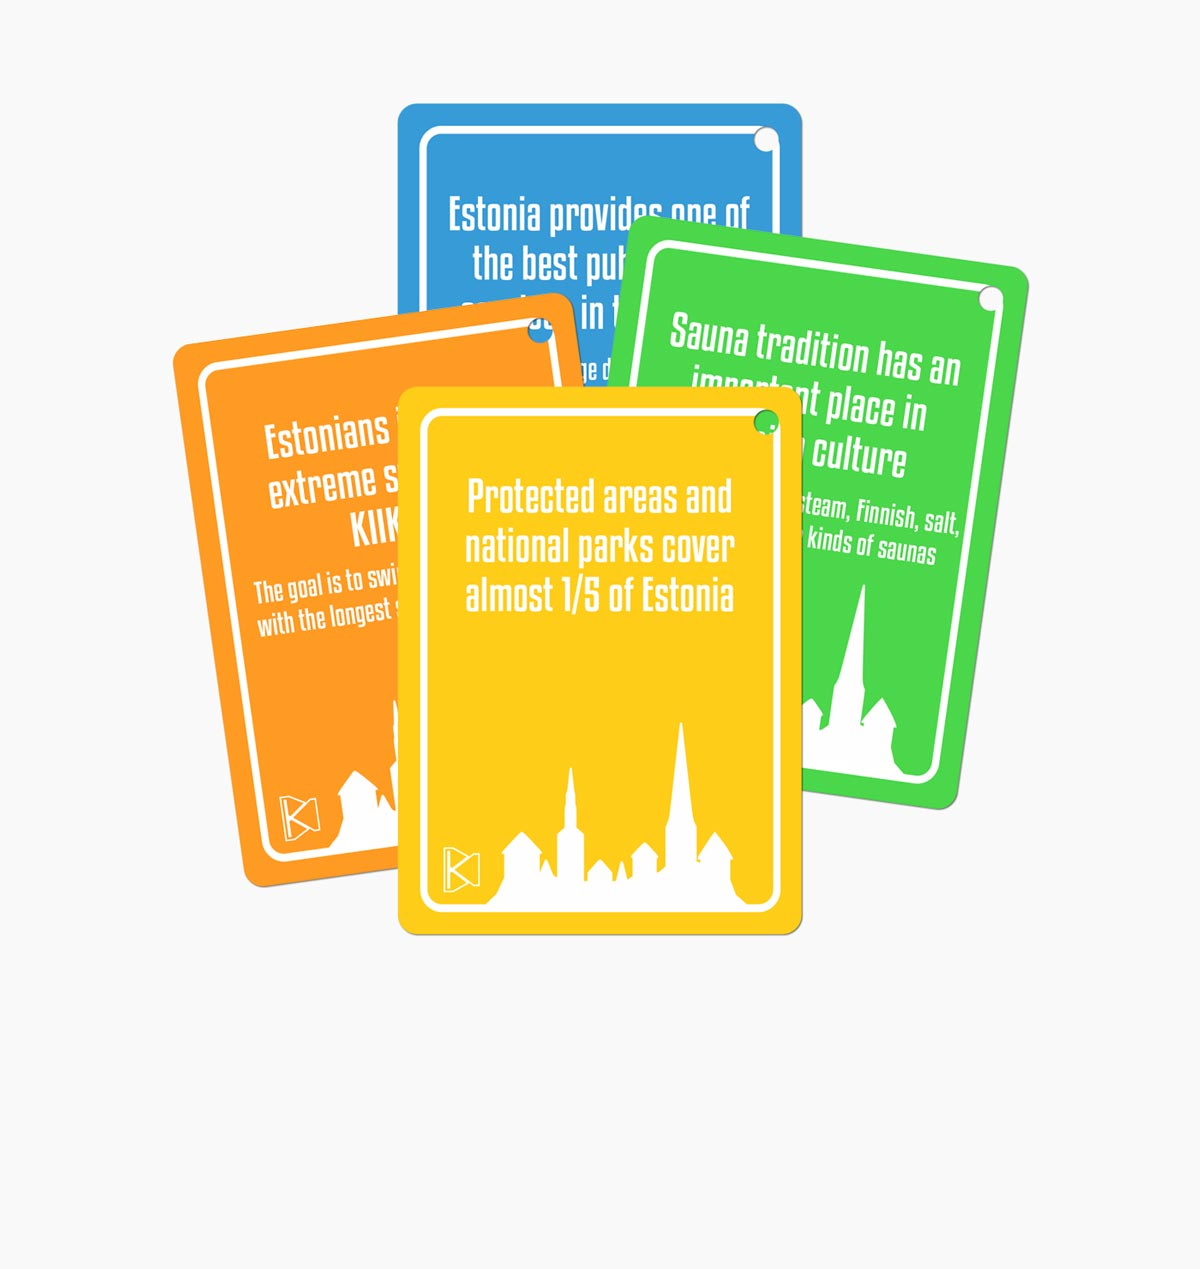 Kruts Language Cards - Practical Words & Phrases For Tourists